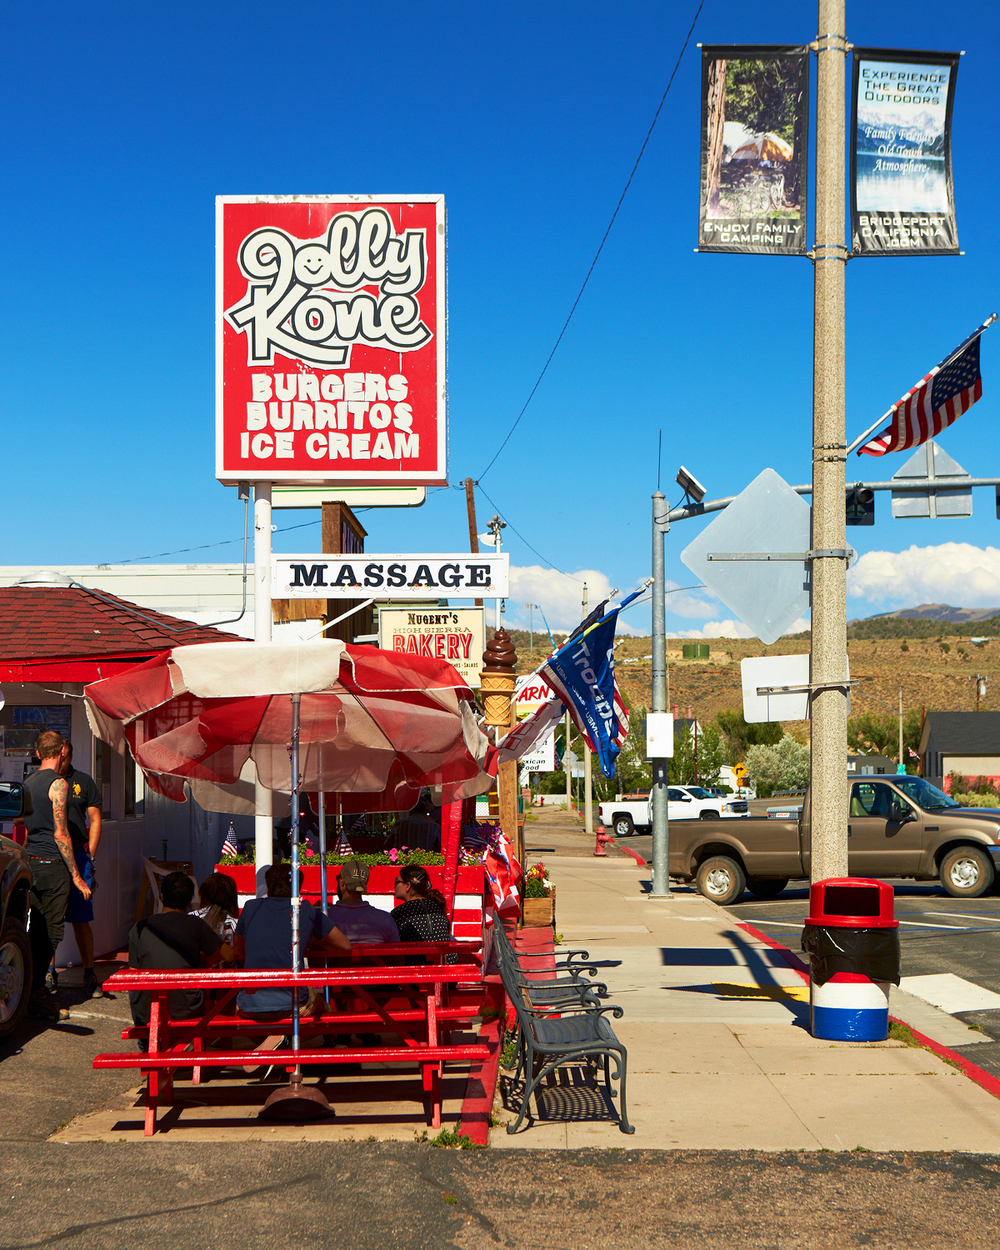 THE JOLLY CONE IN BRIDGEPORT